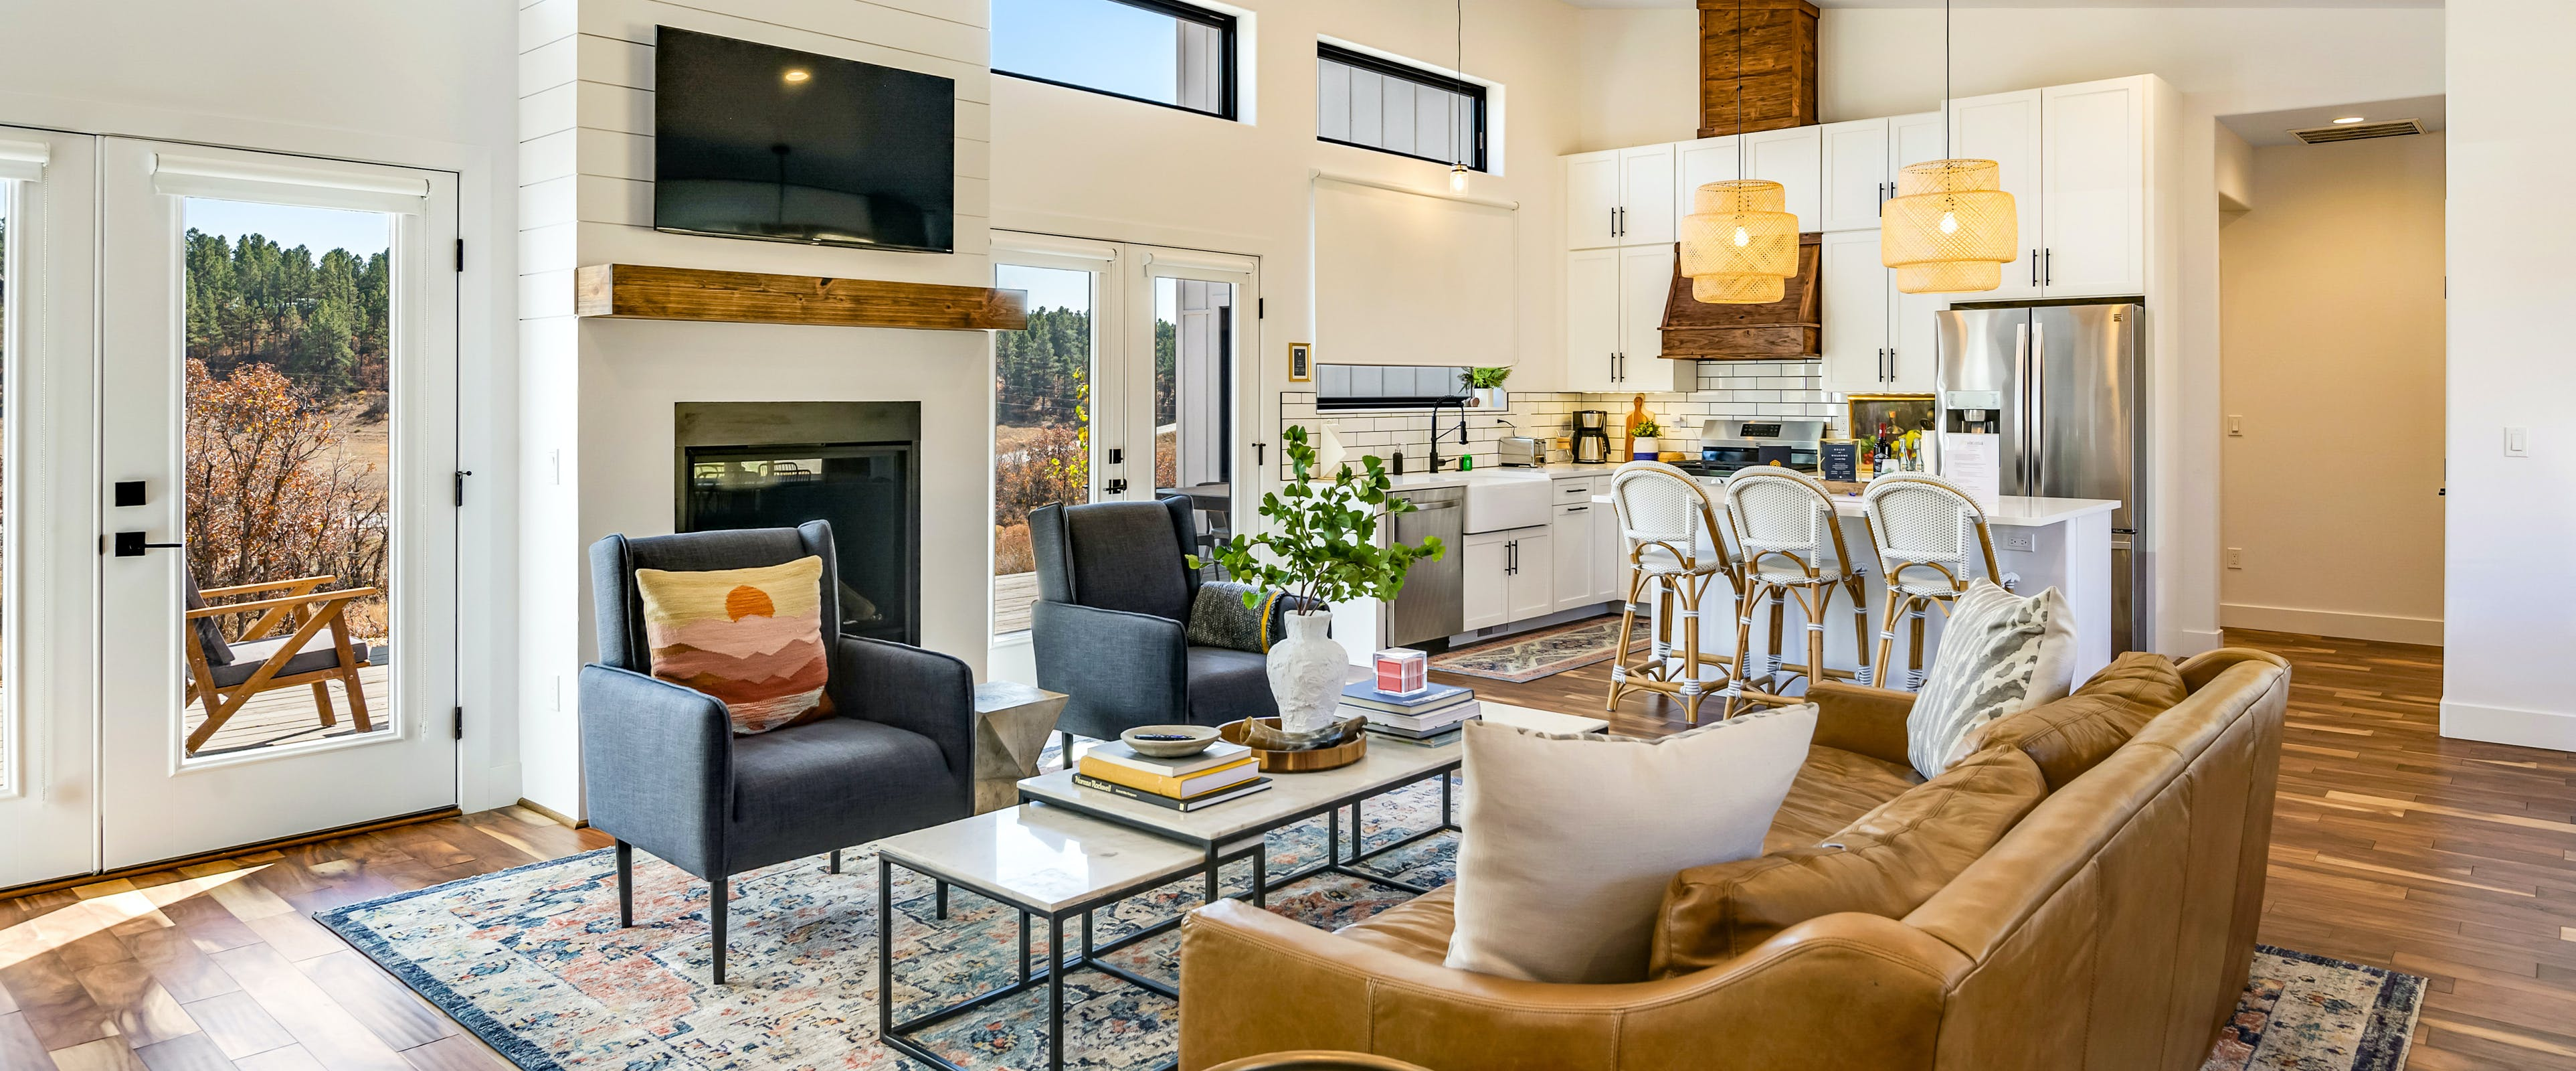 open layout living space and kitchen of pagosa springs, co vacation home